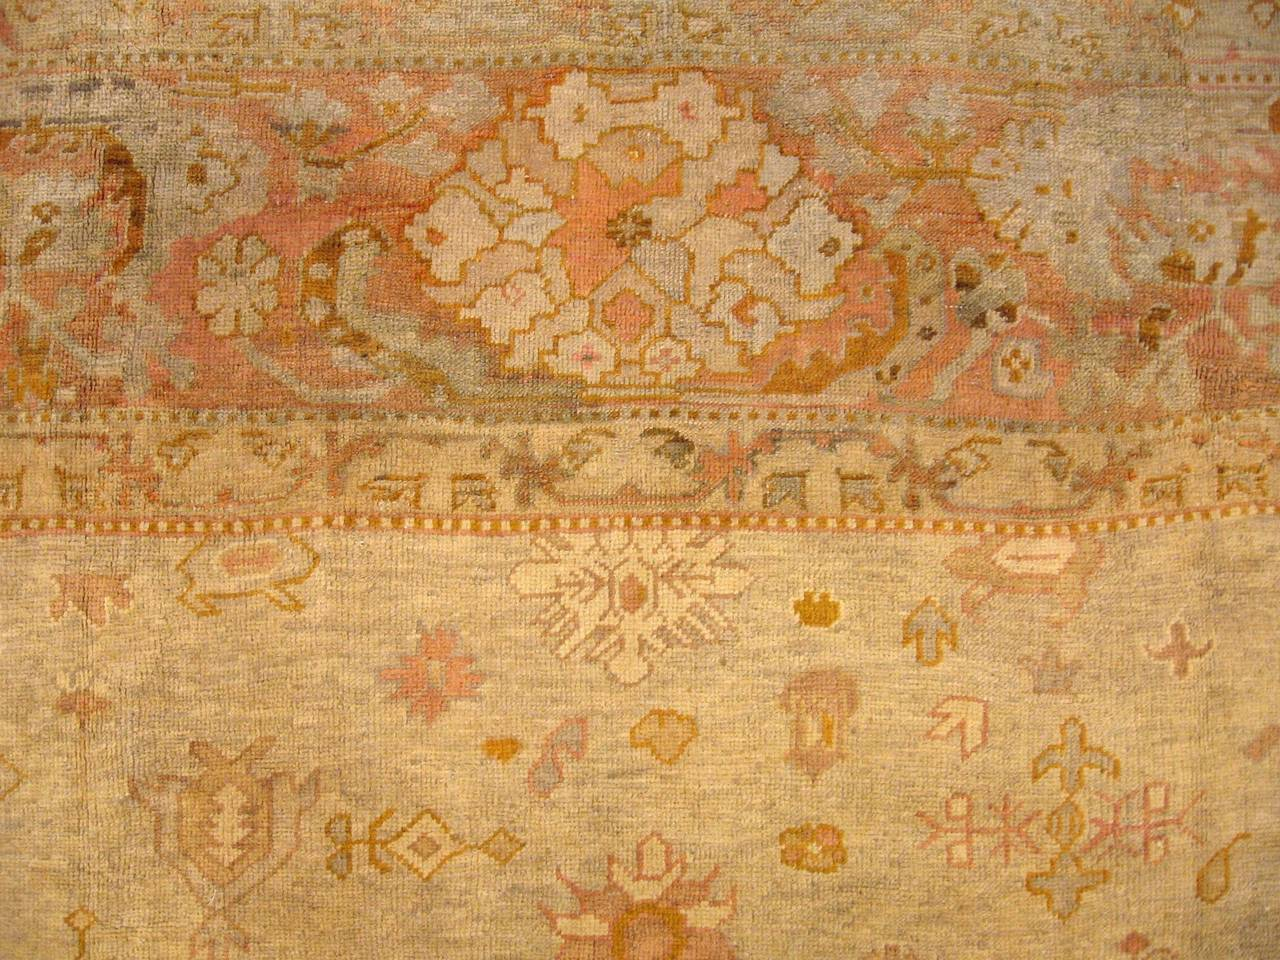 Early 20th Century Antique Turkish Oushak Oriental Carpet, Large Size, Soft Colors & Allover Design For Sale